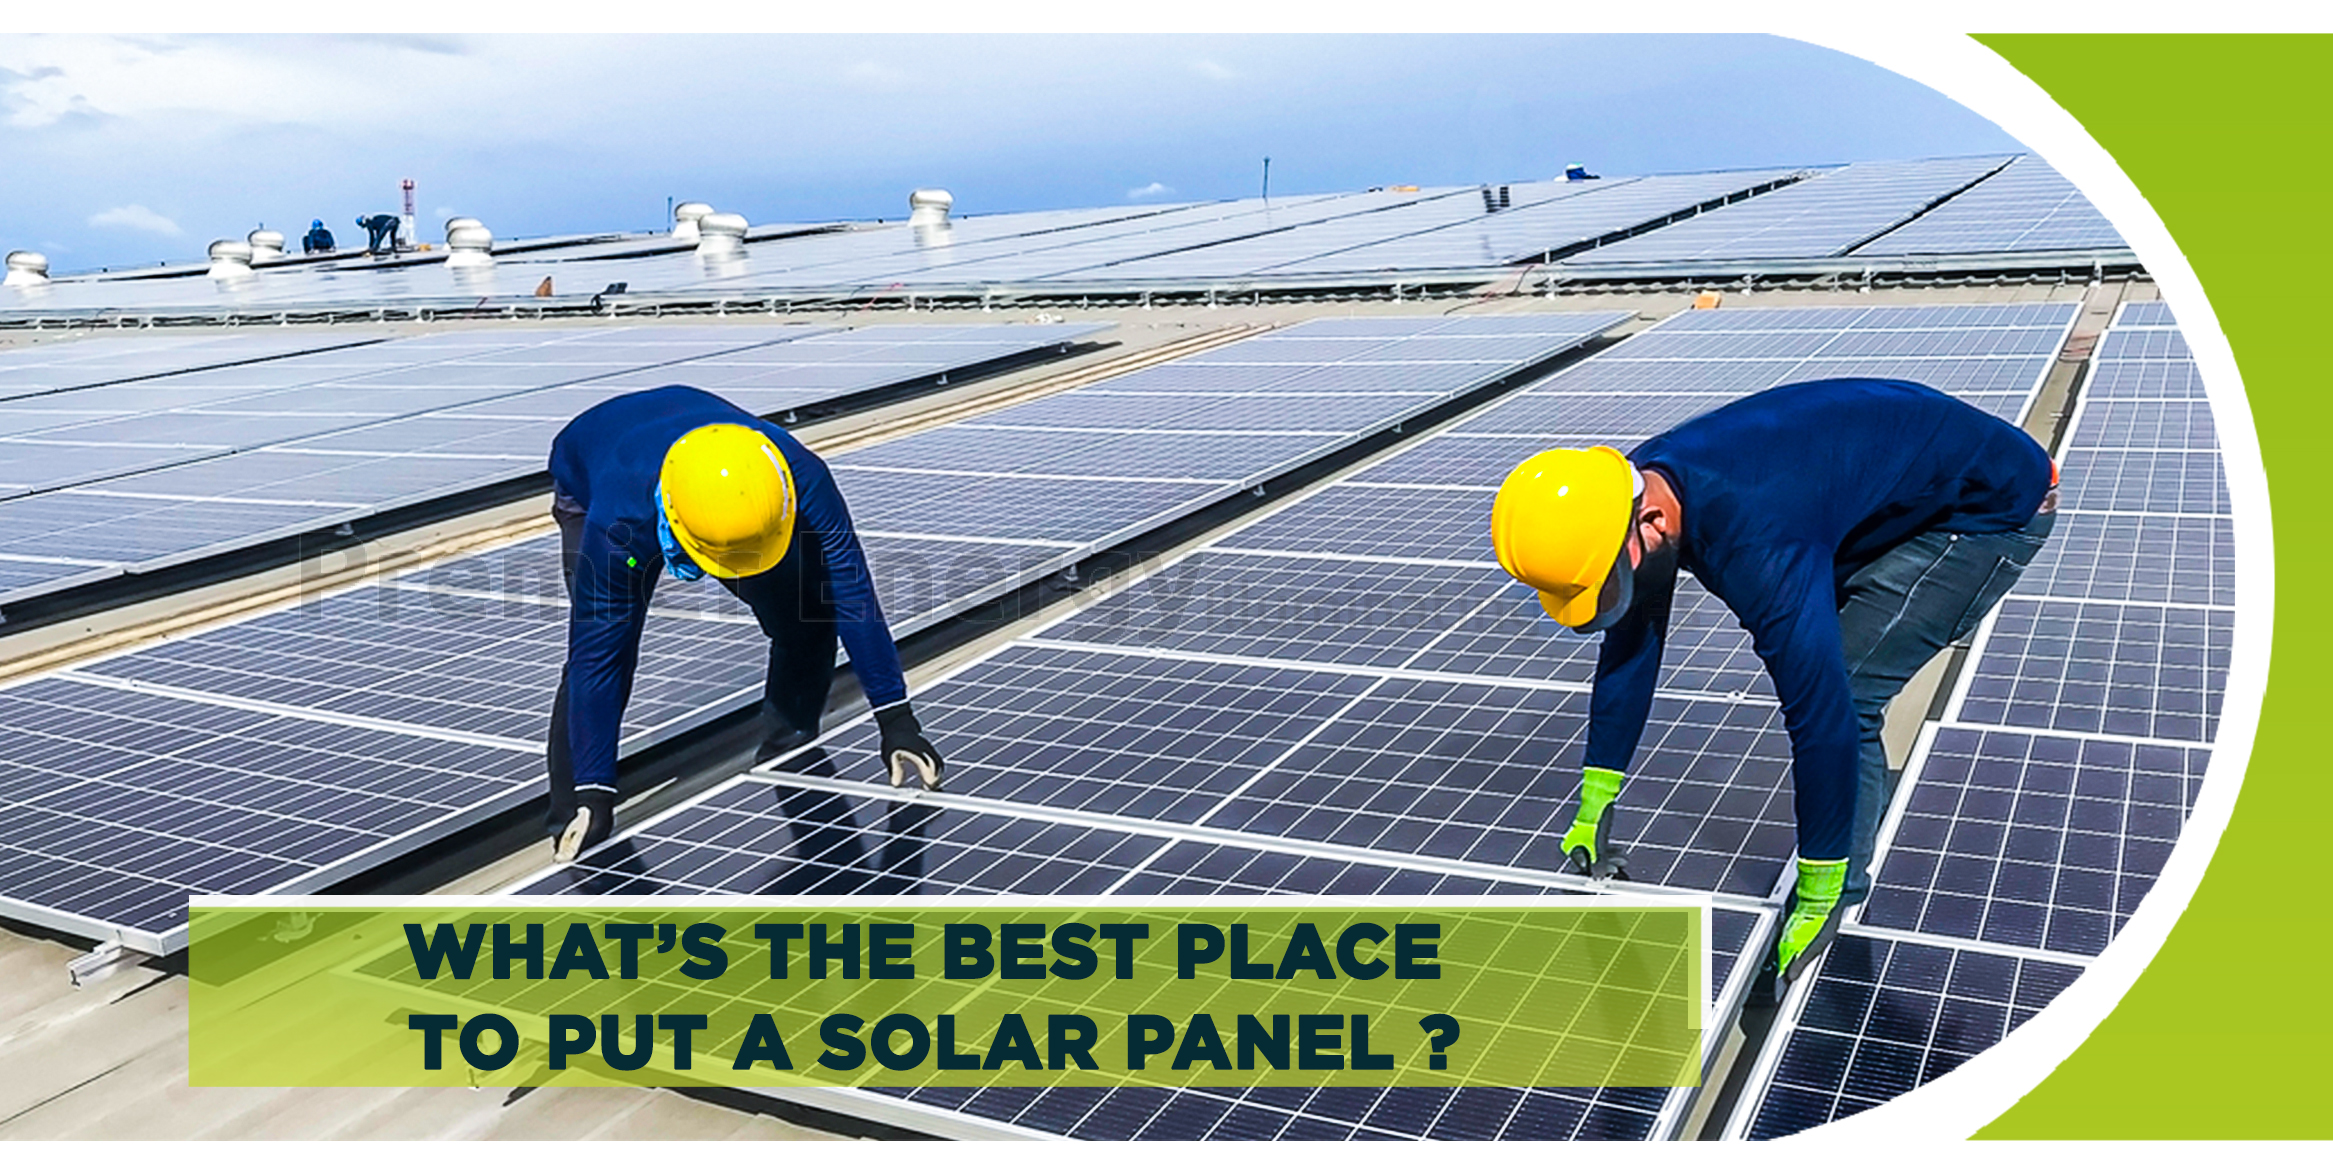 What's the Best Place to Put a Solar Panel bLOG